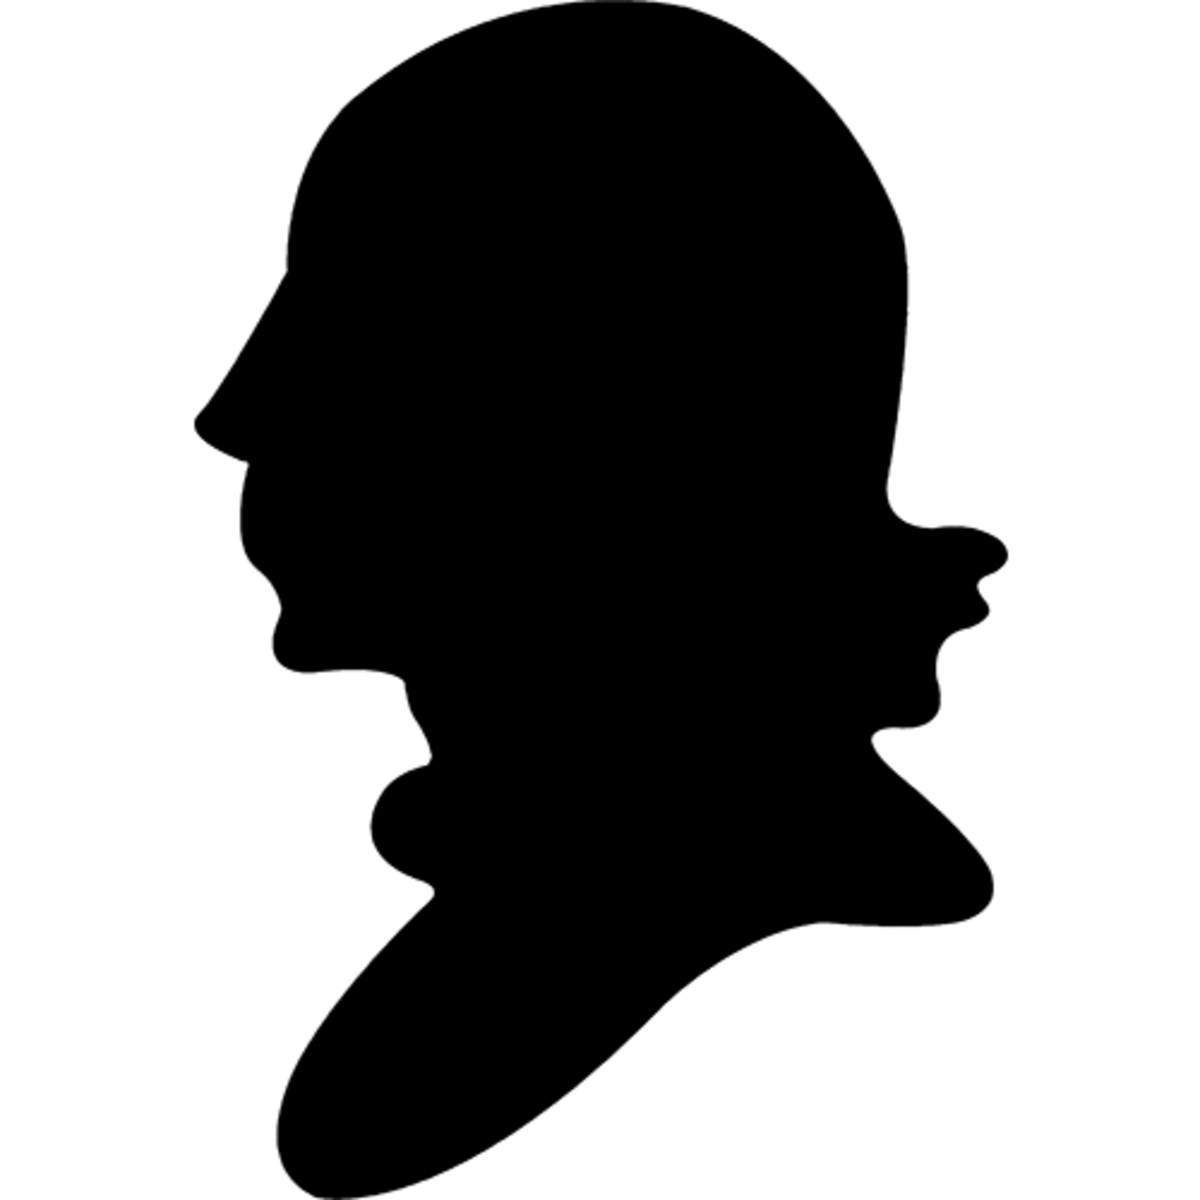 The Federalist Society logo, depicting the silhouette of James Madison's bust. (Photo: The Federalist Society)